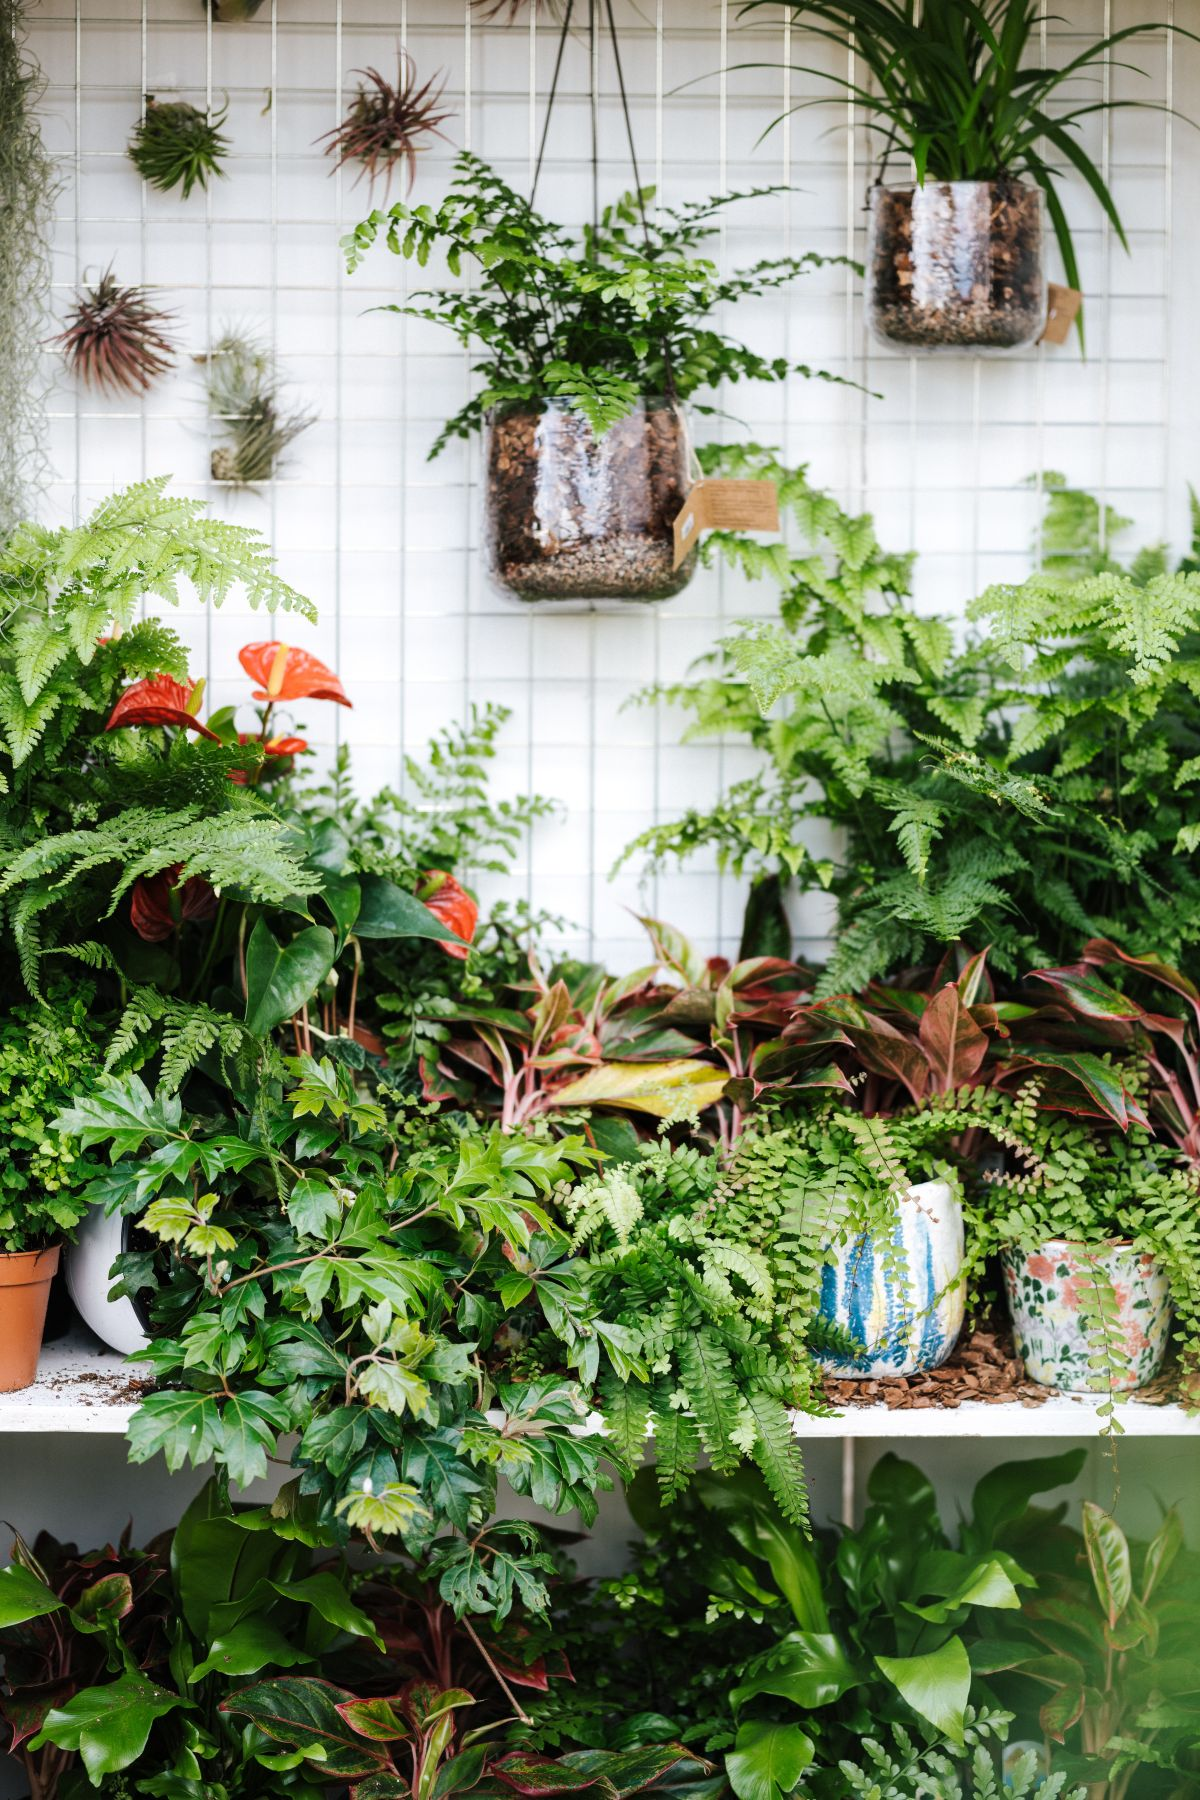 11 easy house plants: low-maintenance, forgiving and wonderfully indestructible